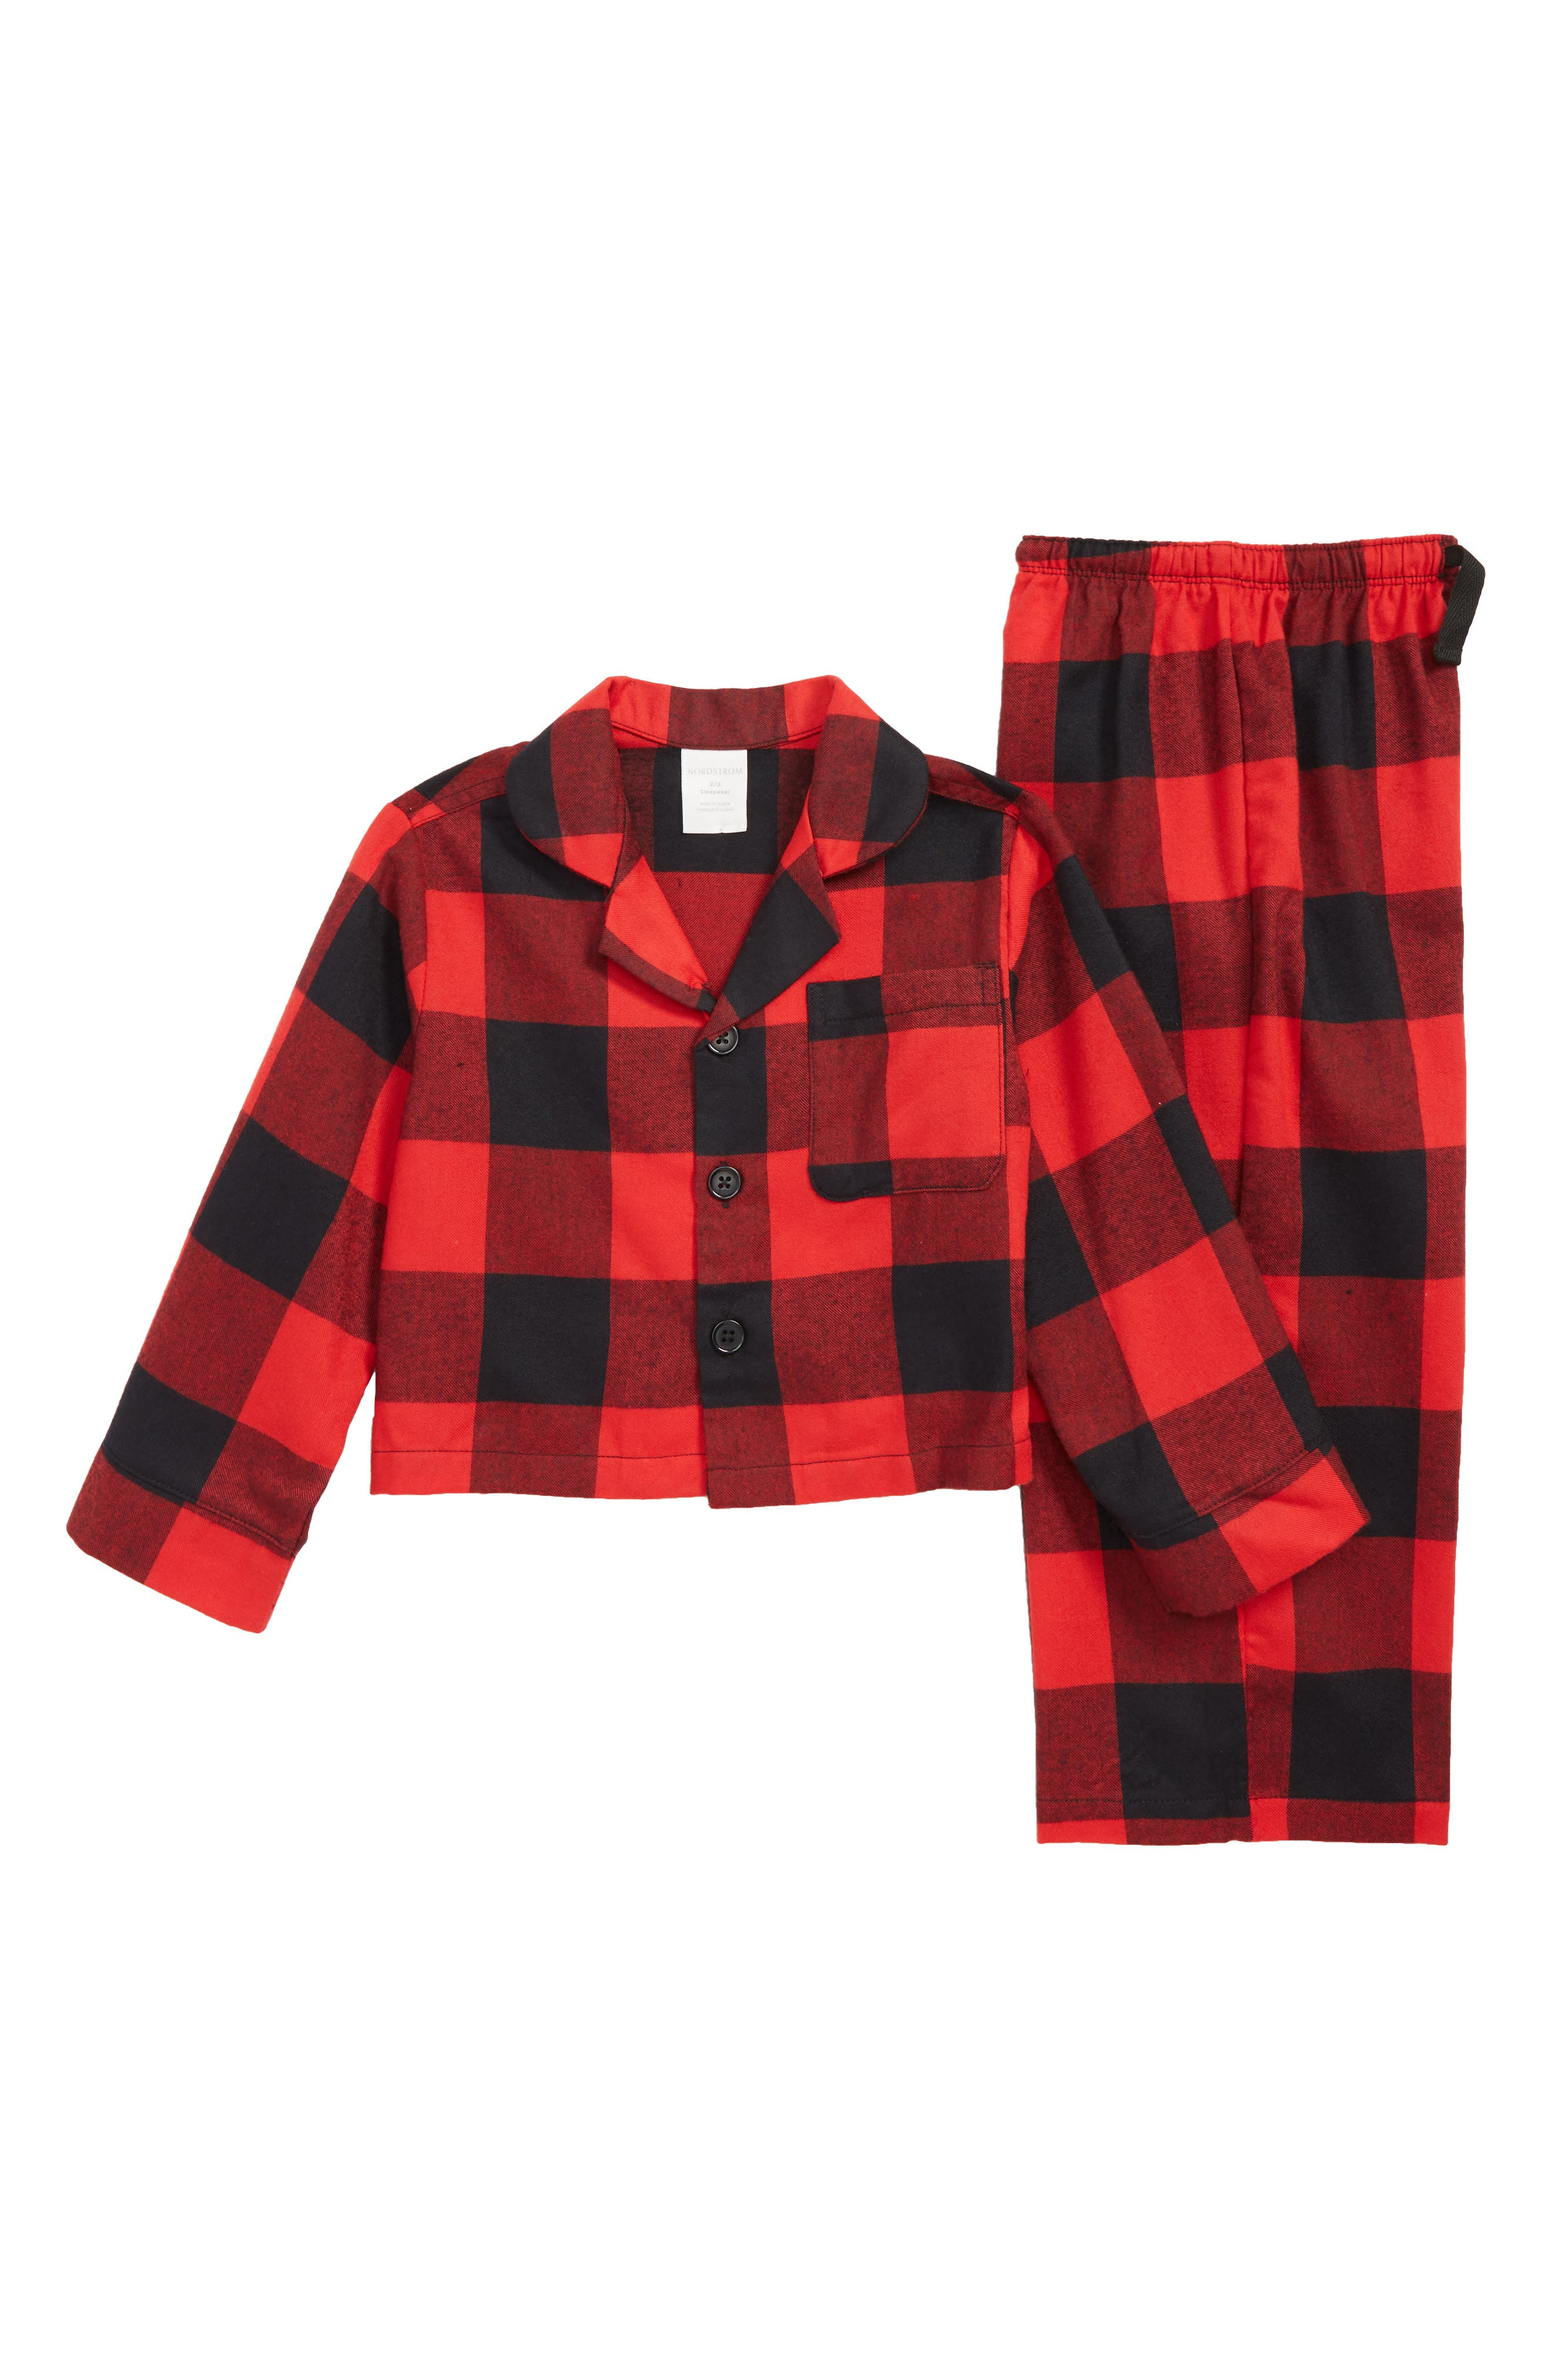 Flannel Pajamas,                             Main thumbnail 1, color,                             610